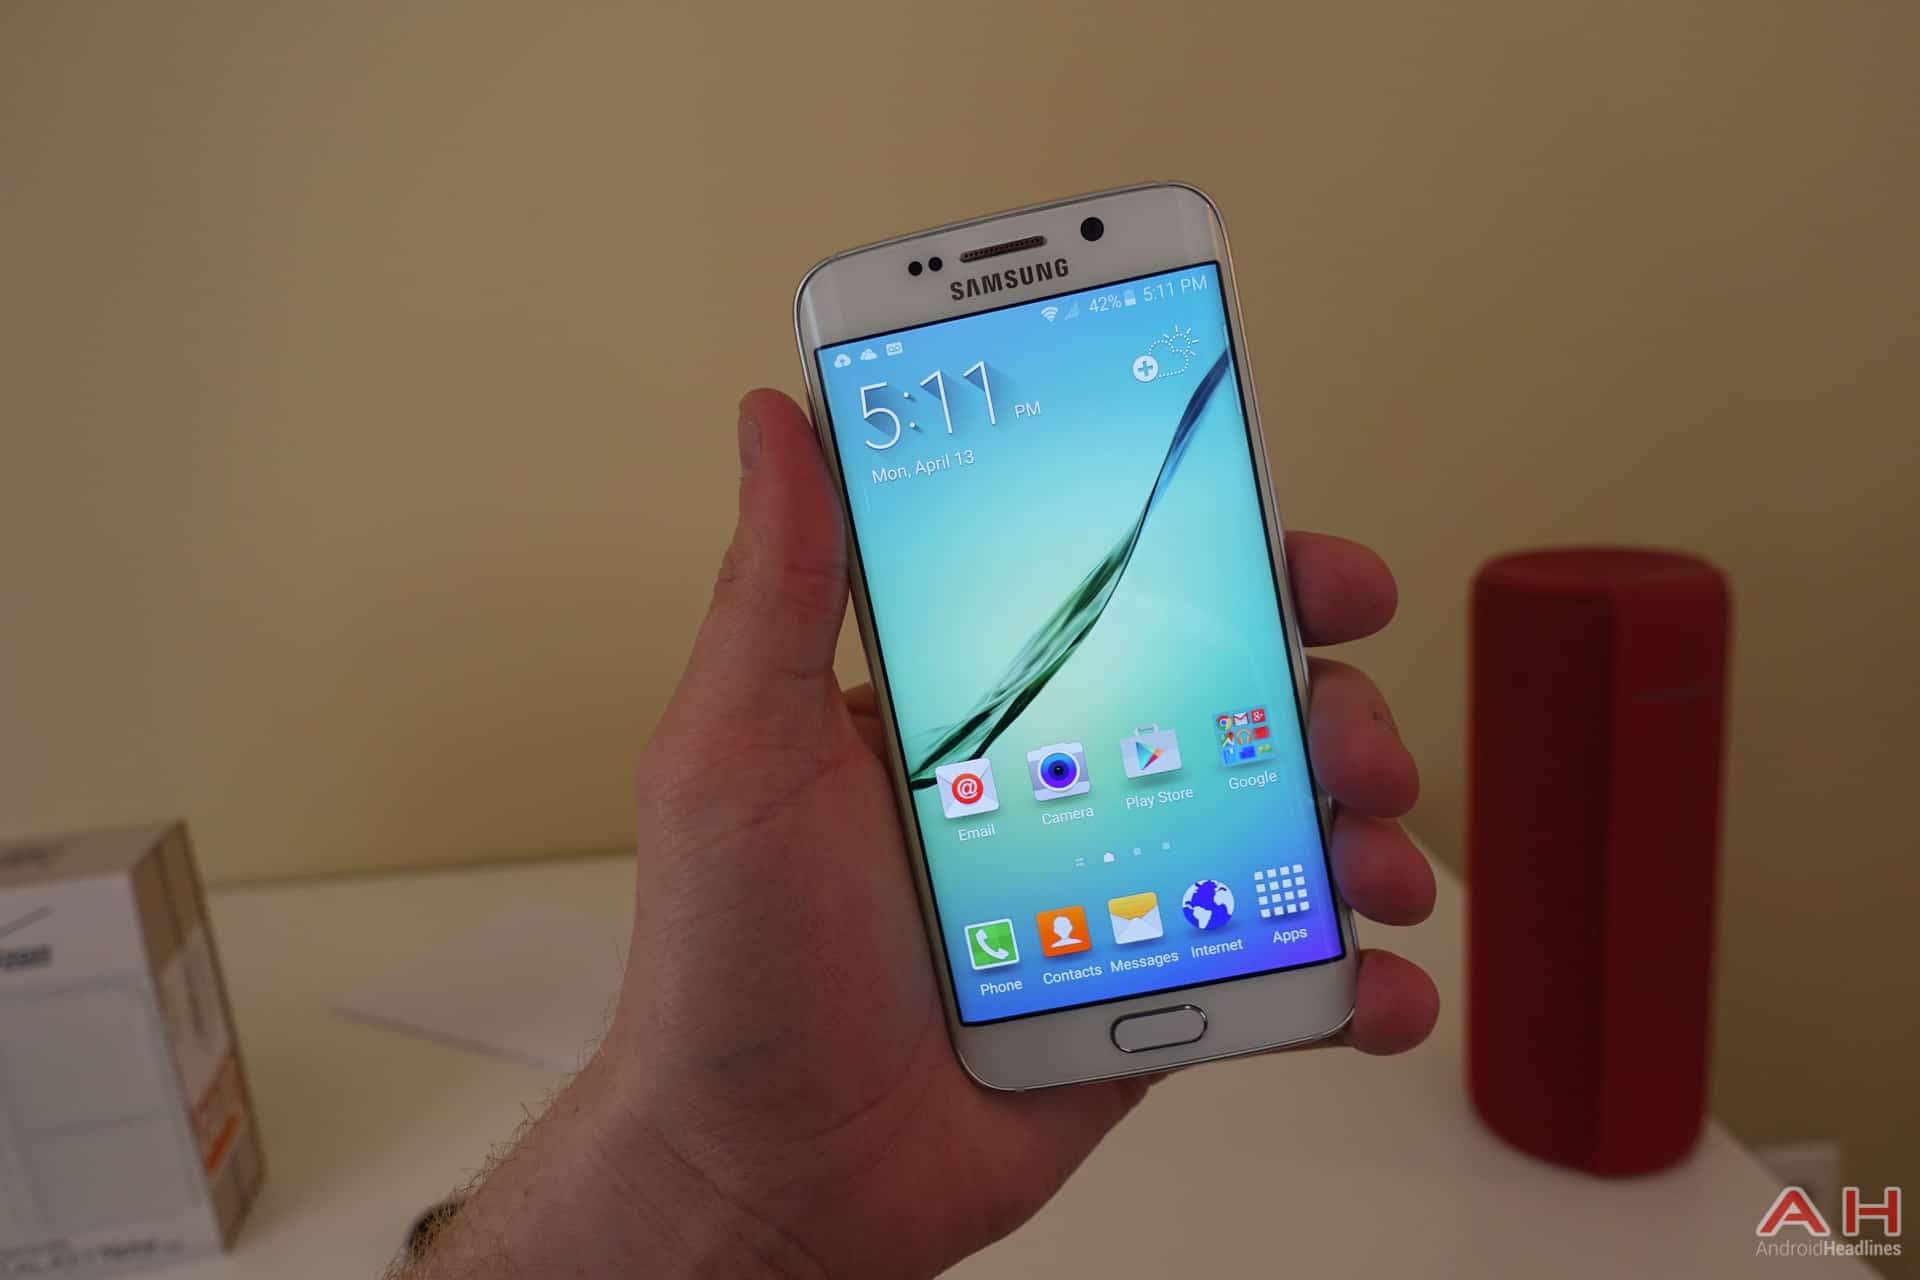 Samsung-Galaxy-S6-Edge-AH-1